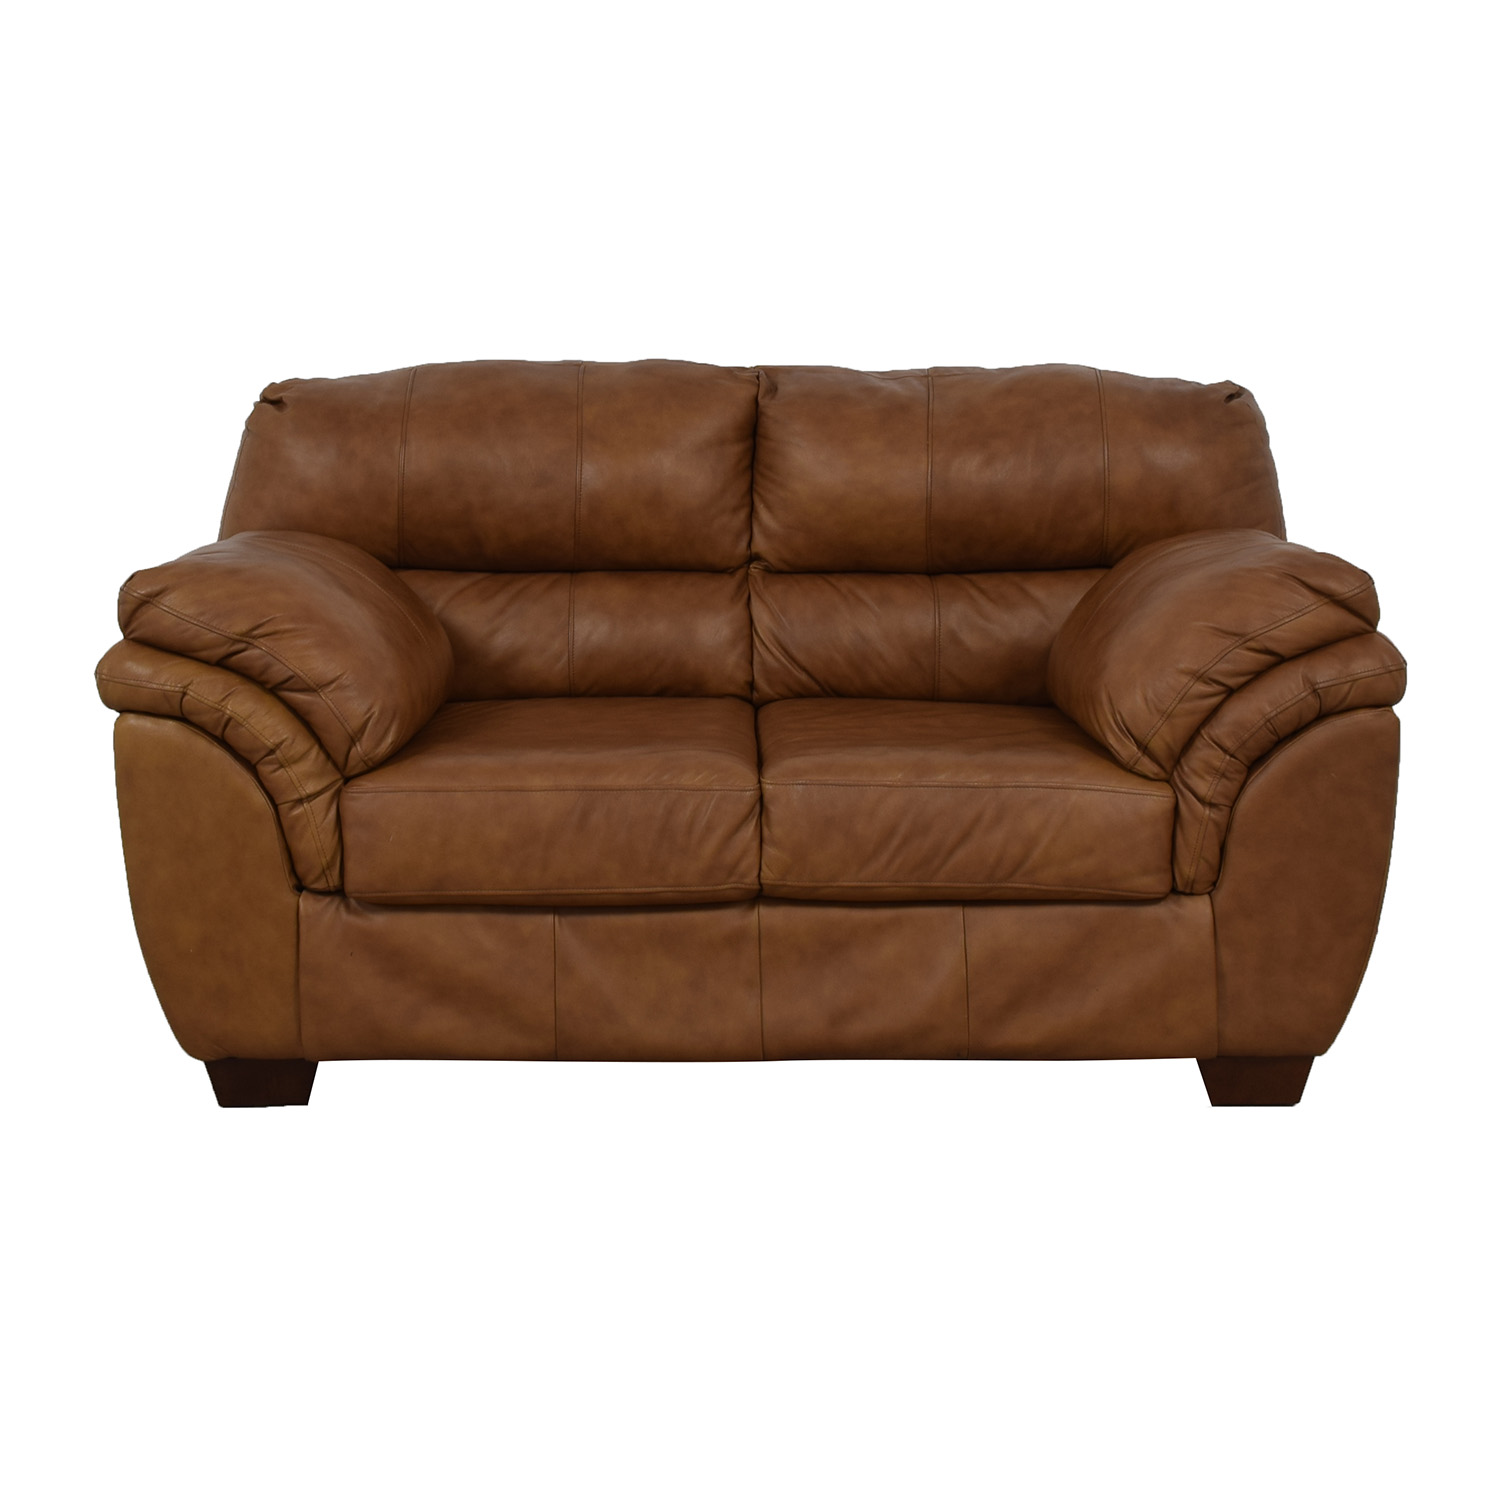 buy Jennifer Convertibles Brown Loveseat Jennifer Convertibles